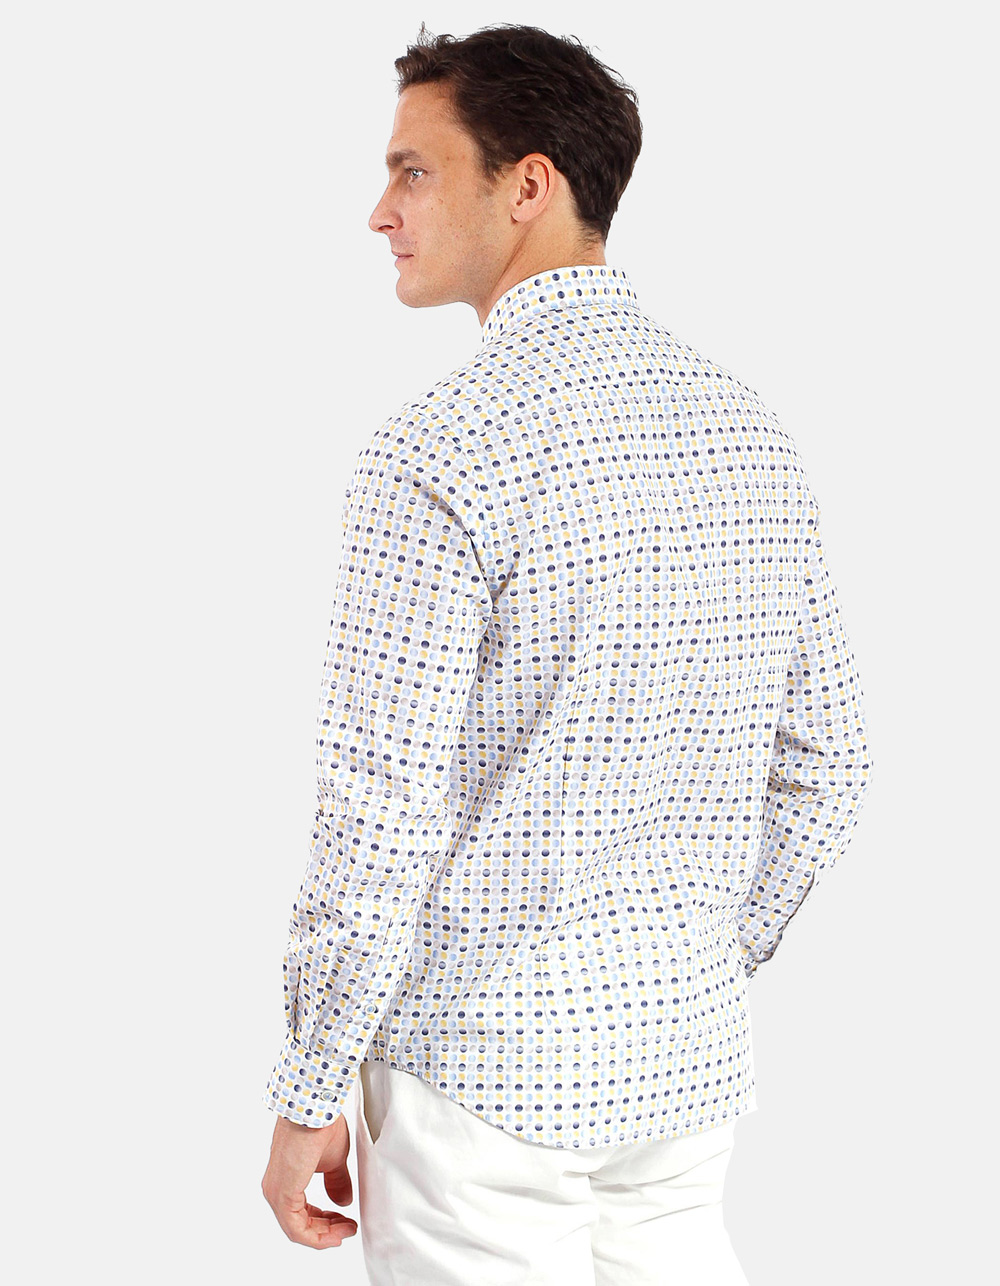 Printed shirt circles - Backside